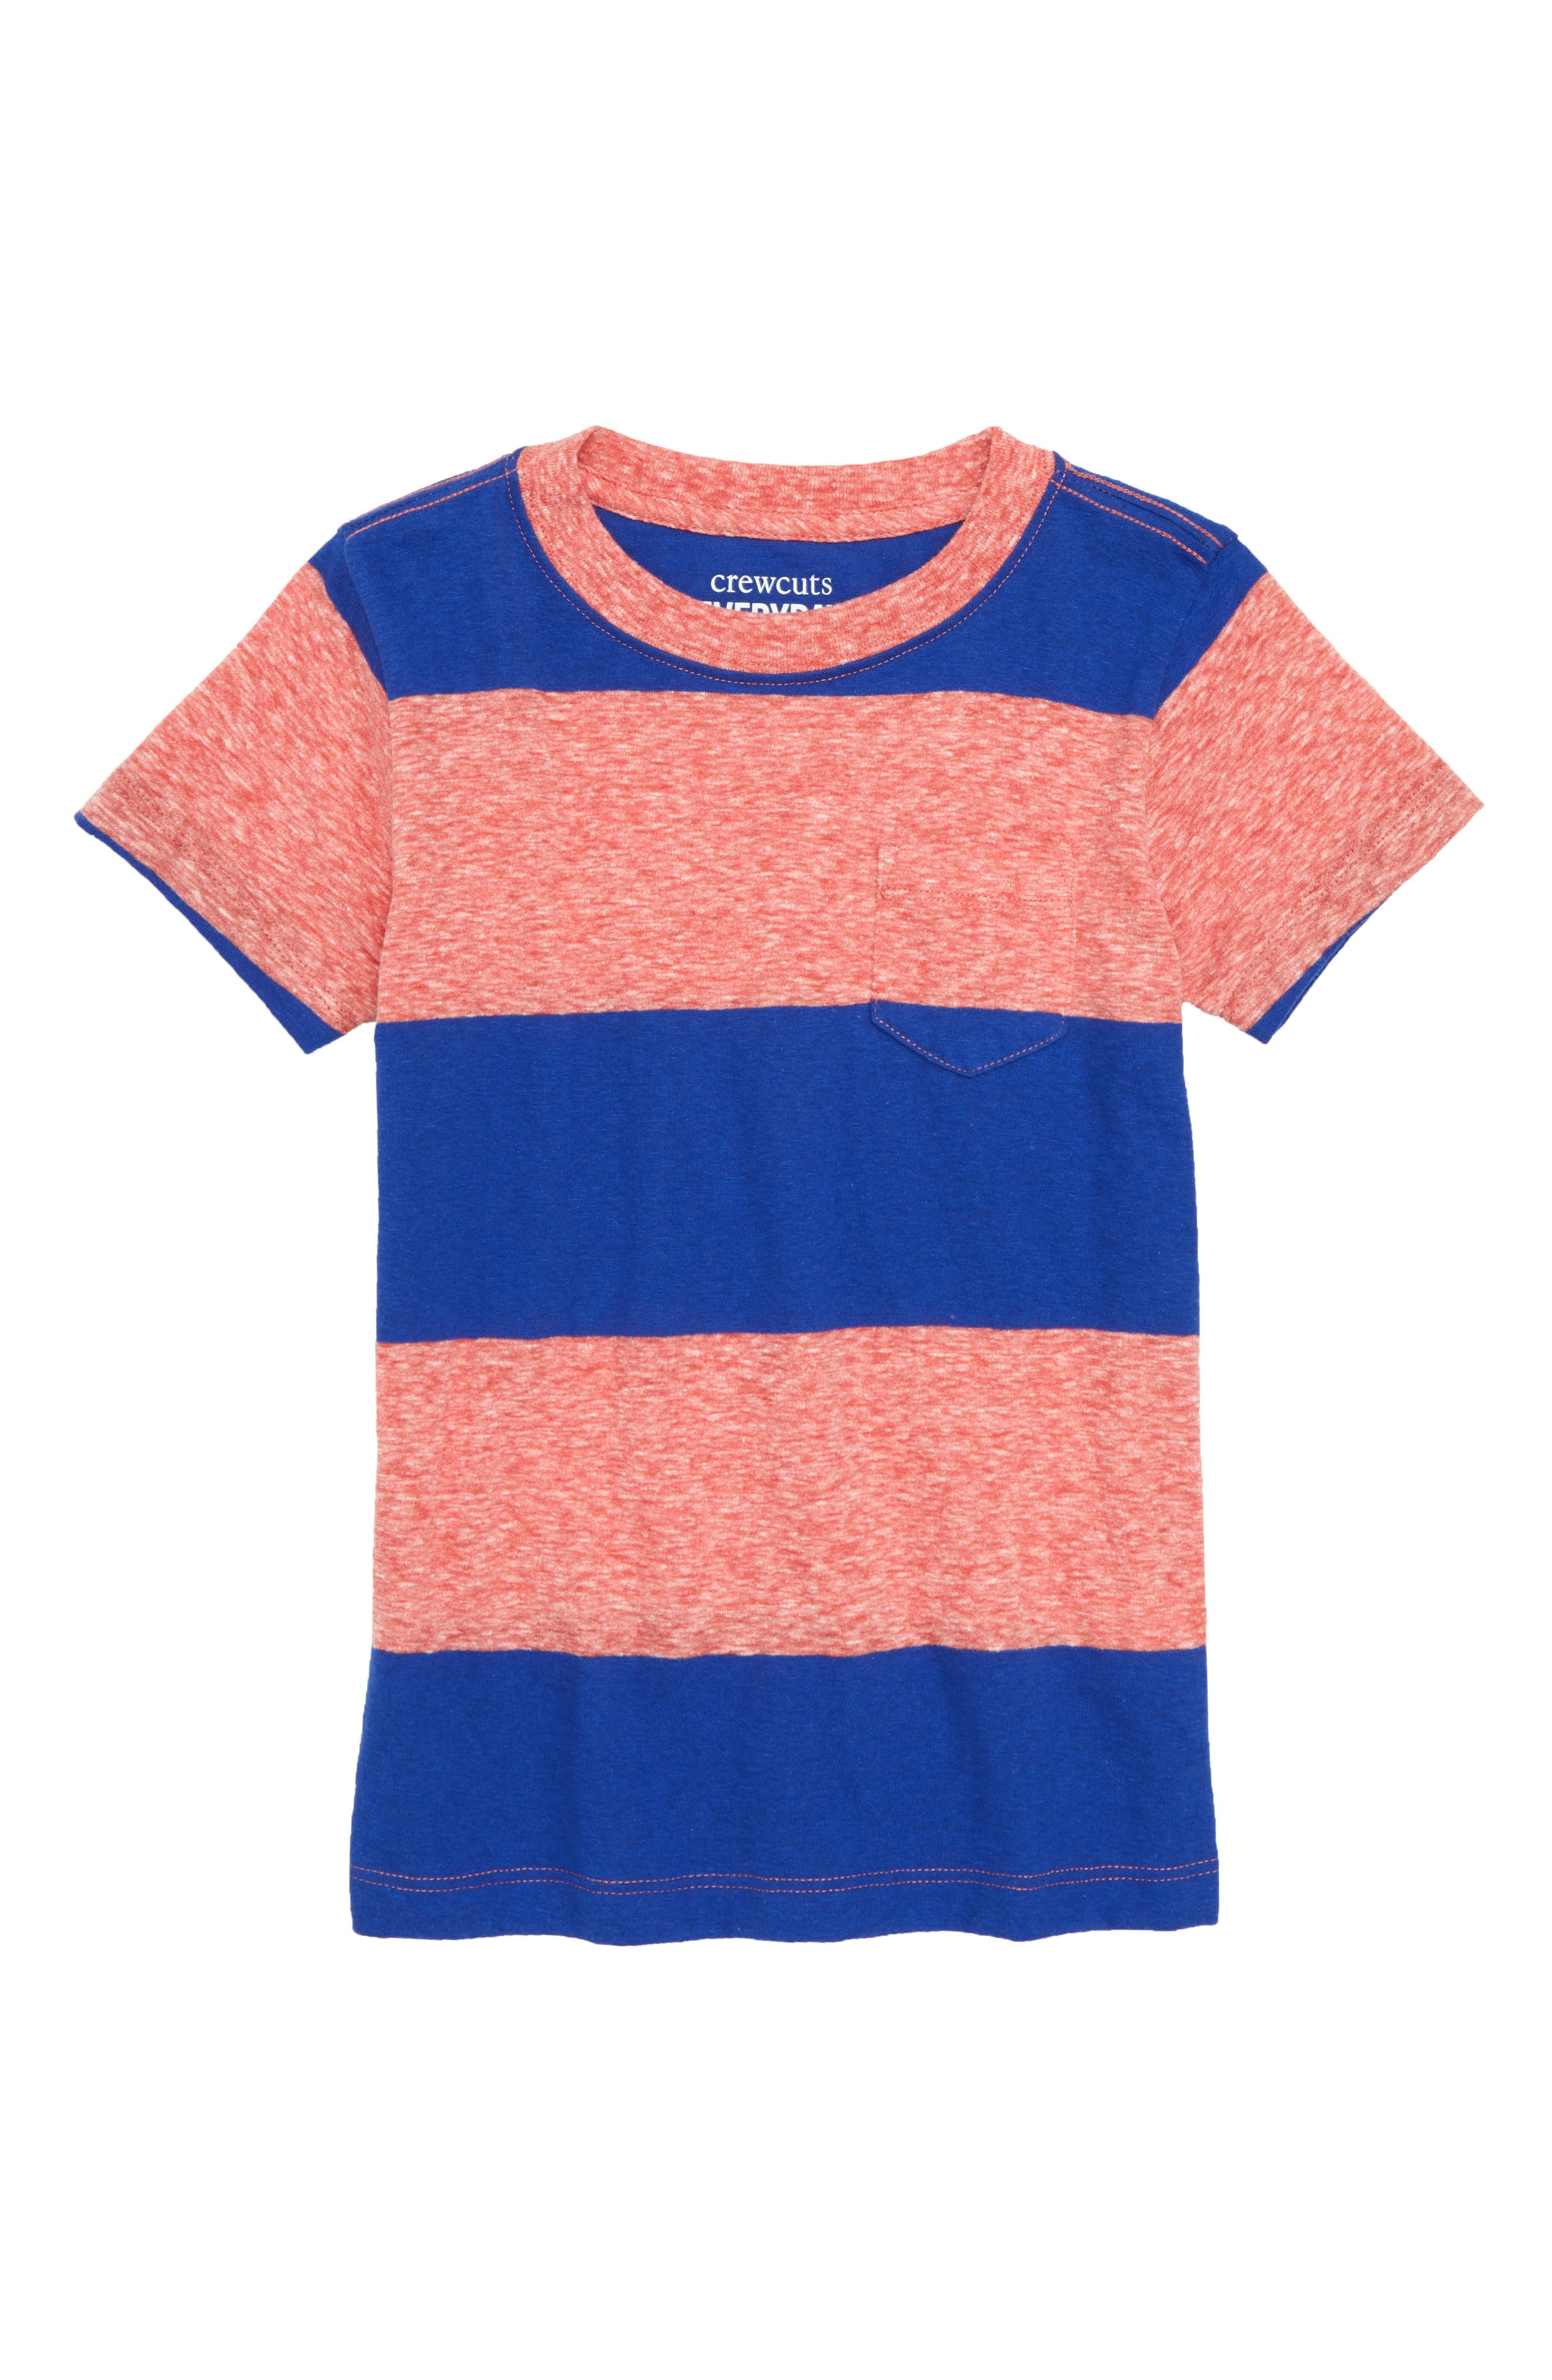 CREWCUTS BY J.CREW,                             Rugby Stripe Shirt,                             Main thumbnail 1, color,                             600